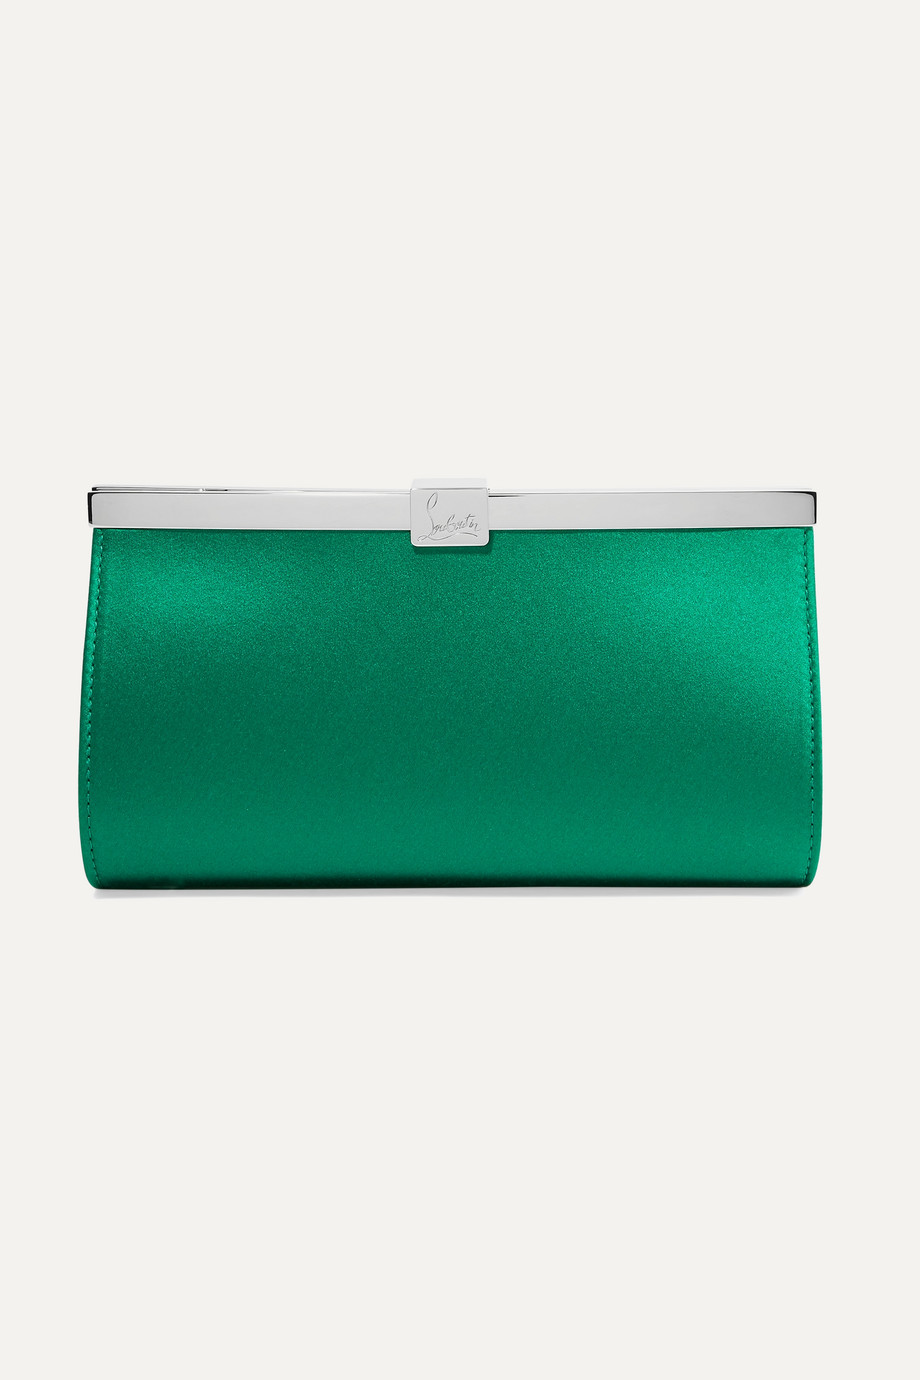 Christian Louboutin Palmette embellished satin clutch